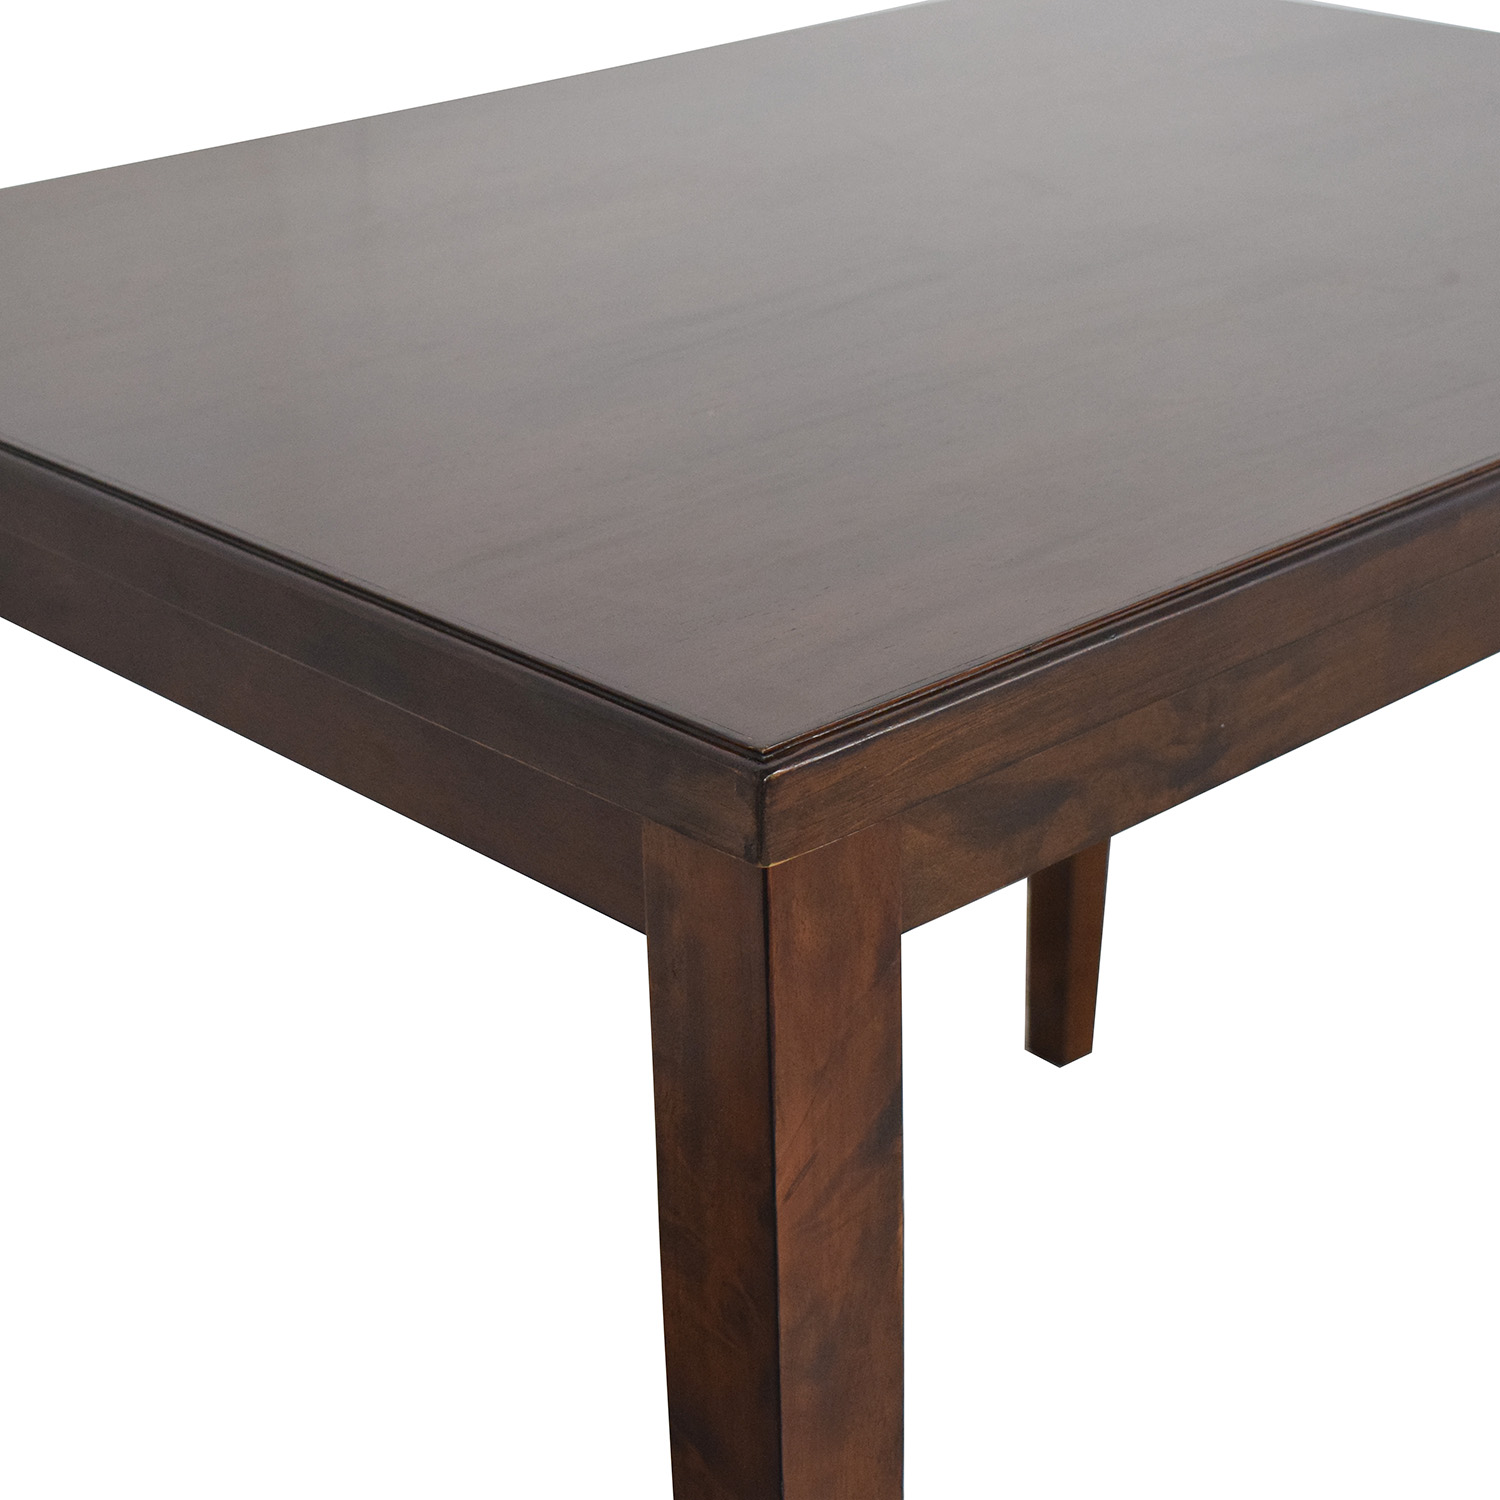 A-America Dining Table / Tables